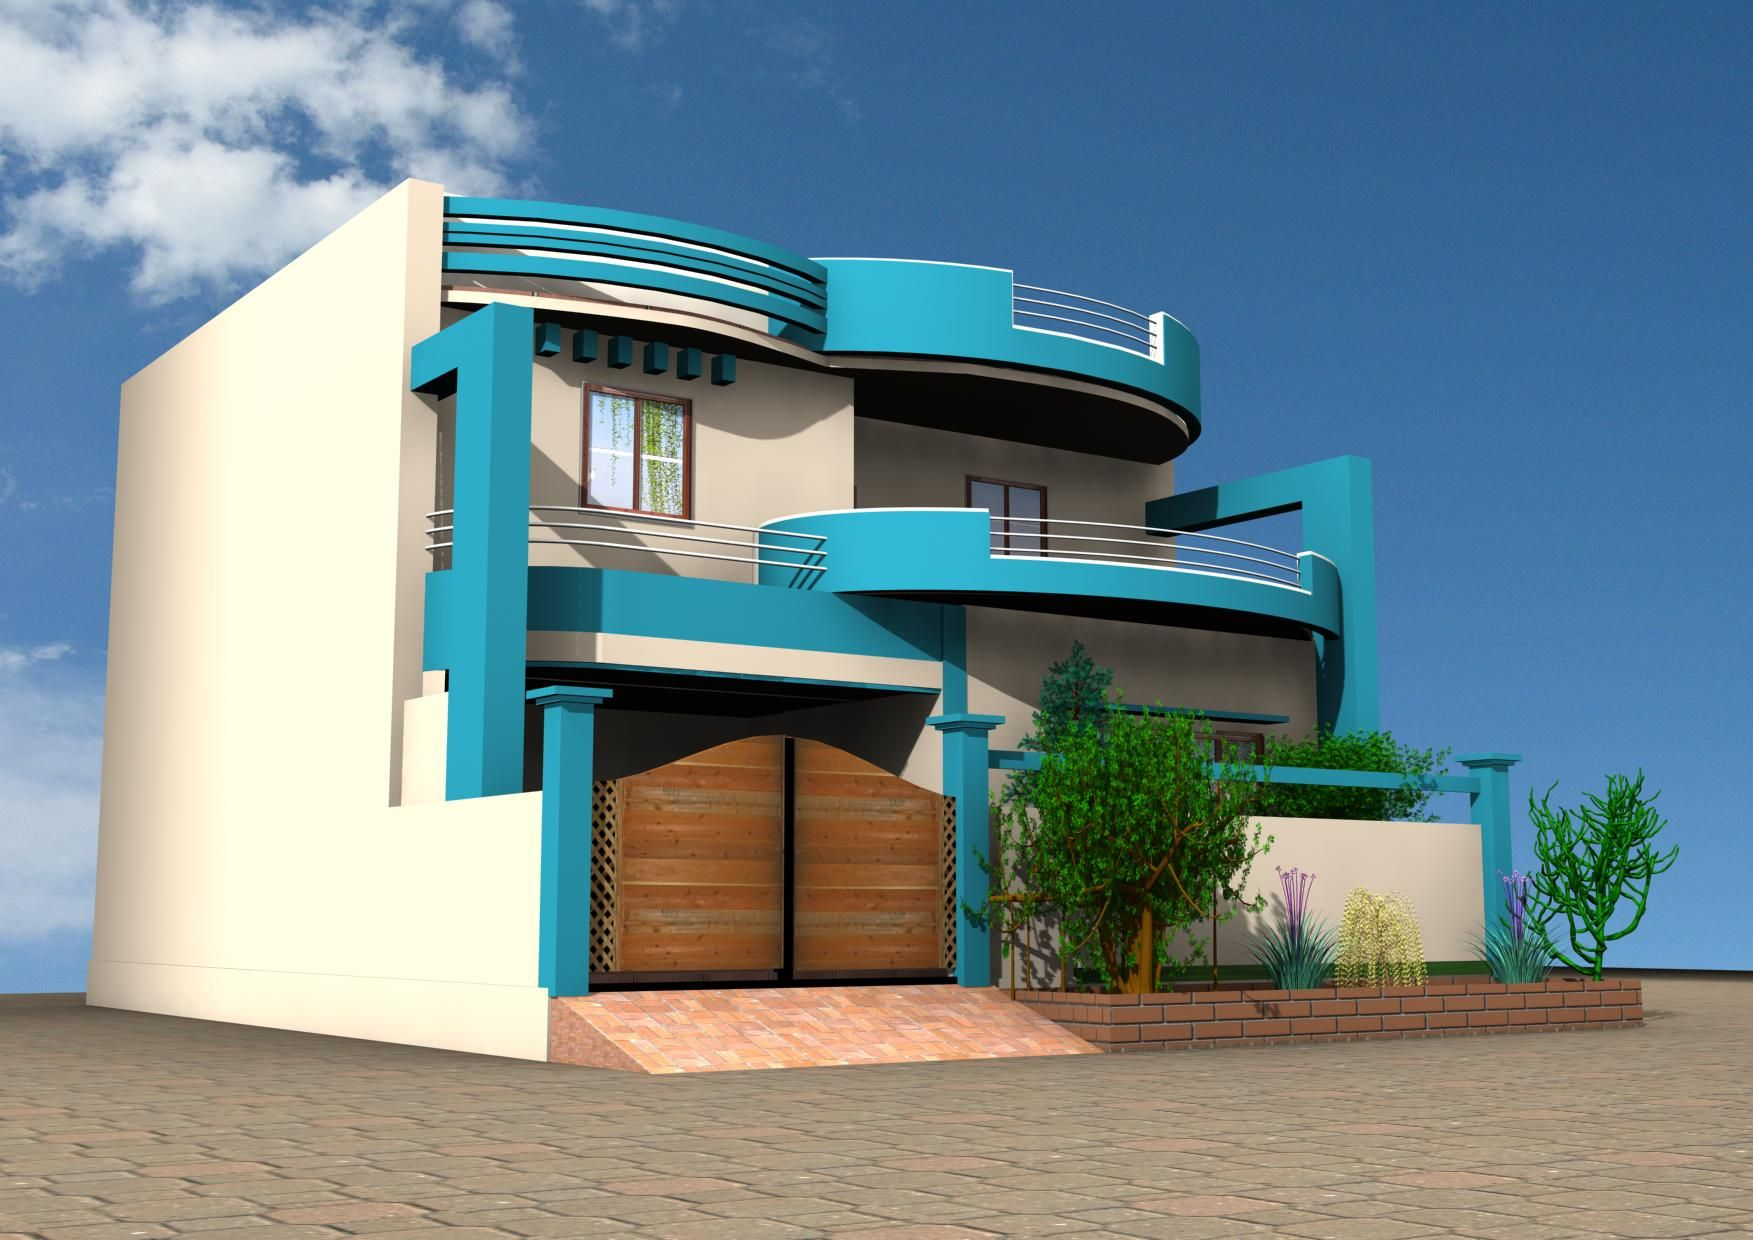 3d home design images hd 1080p for Home building software